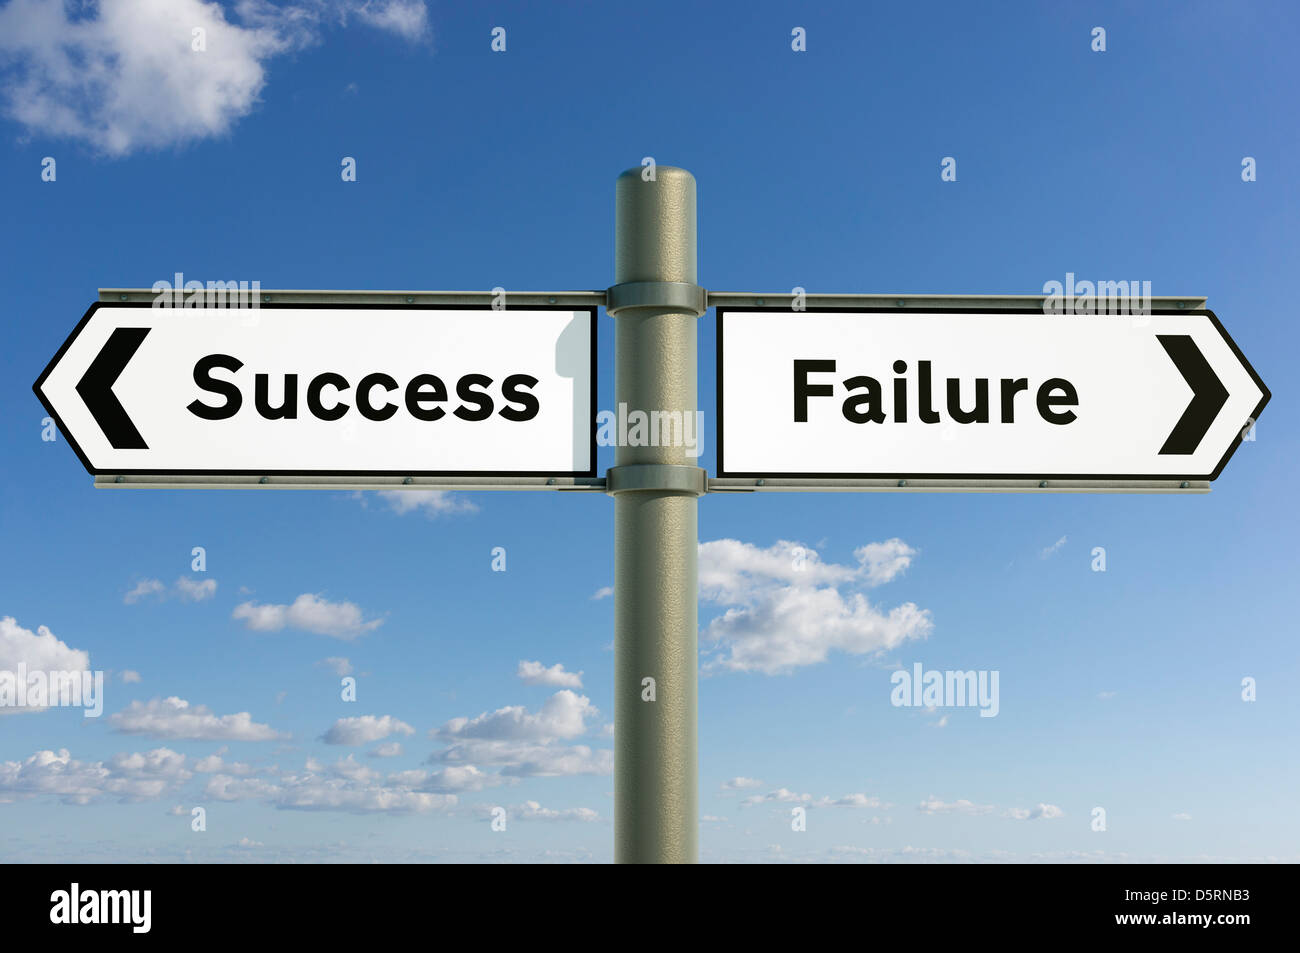 Success, Failure choice, life decision decisions future concept sign - Stock Image